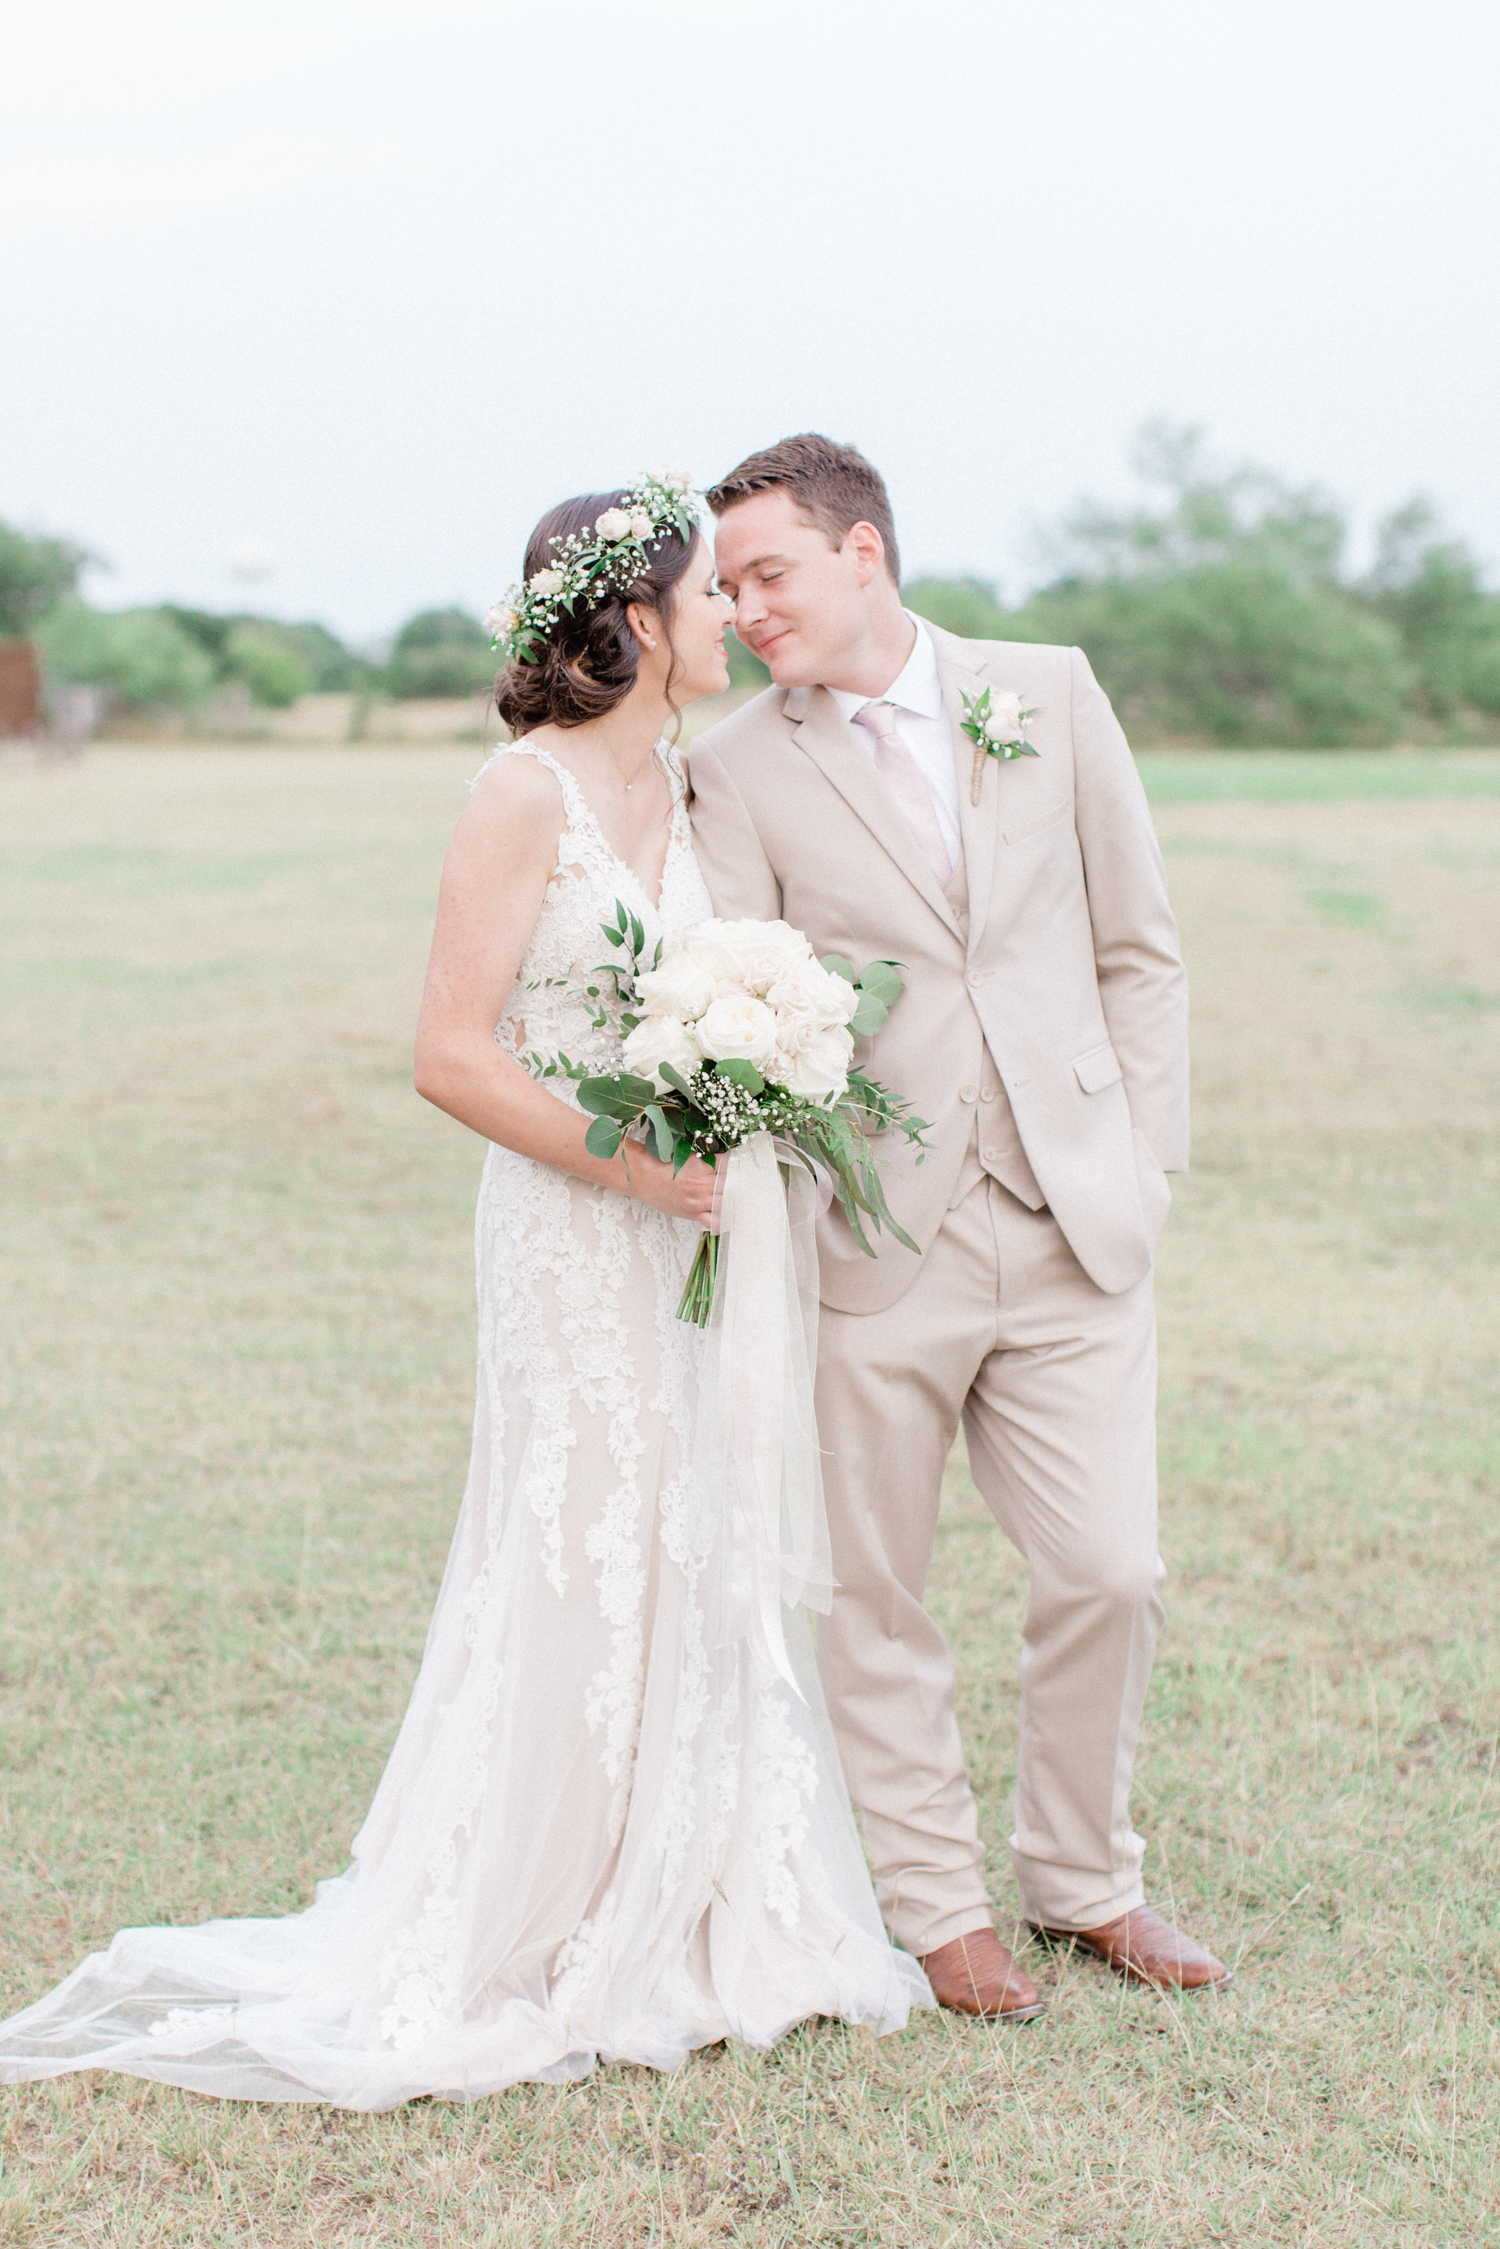 San Antonio Texas Wedding Engagement Photographer Photography Hill Country Texas Old Town Red Bud Hall Summer Blush Ivory Tan Rustic Classic Elegant Wedding San Antonio Austin Texas photographer 59